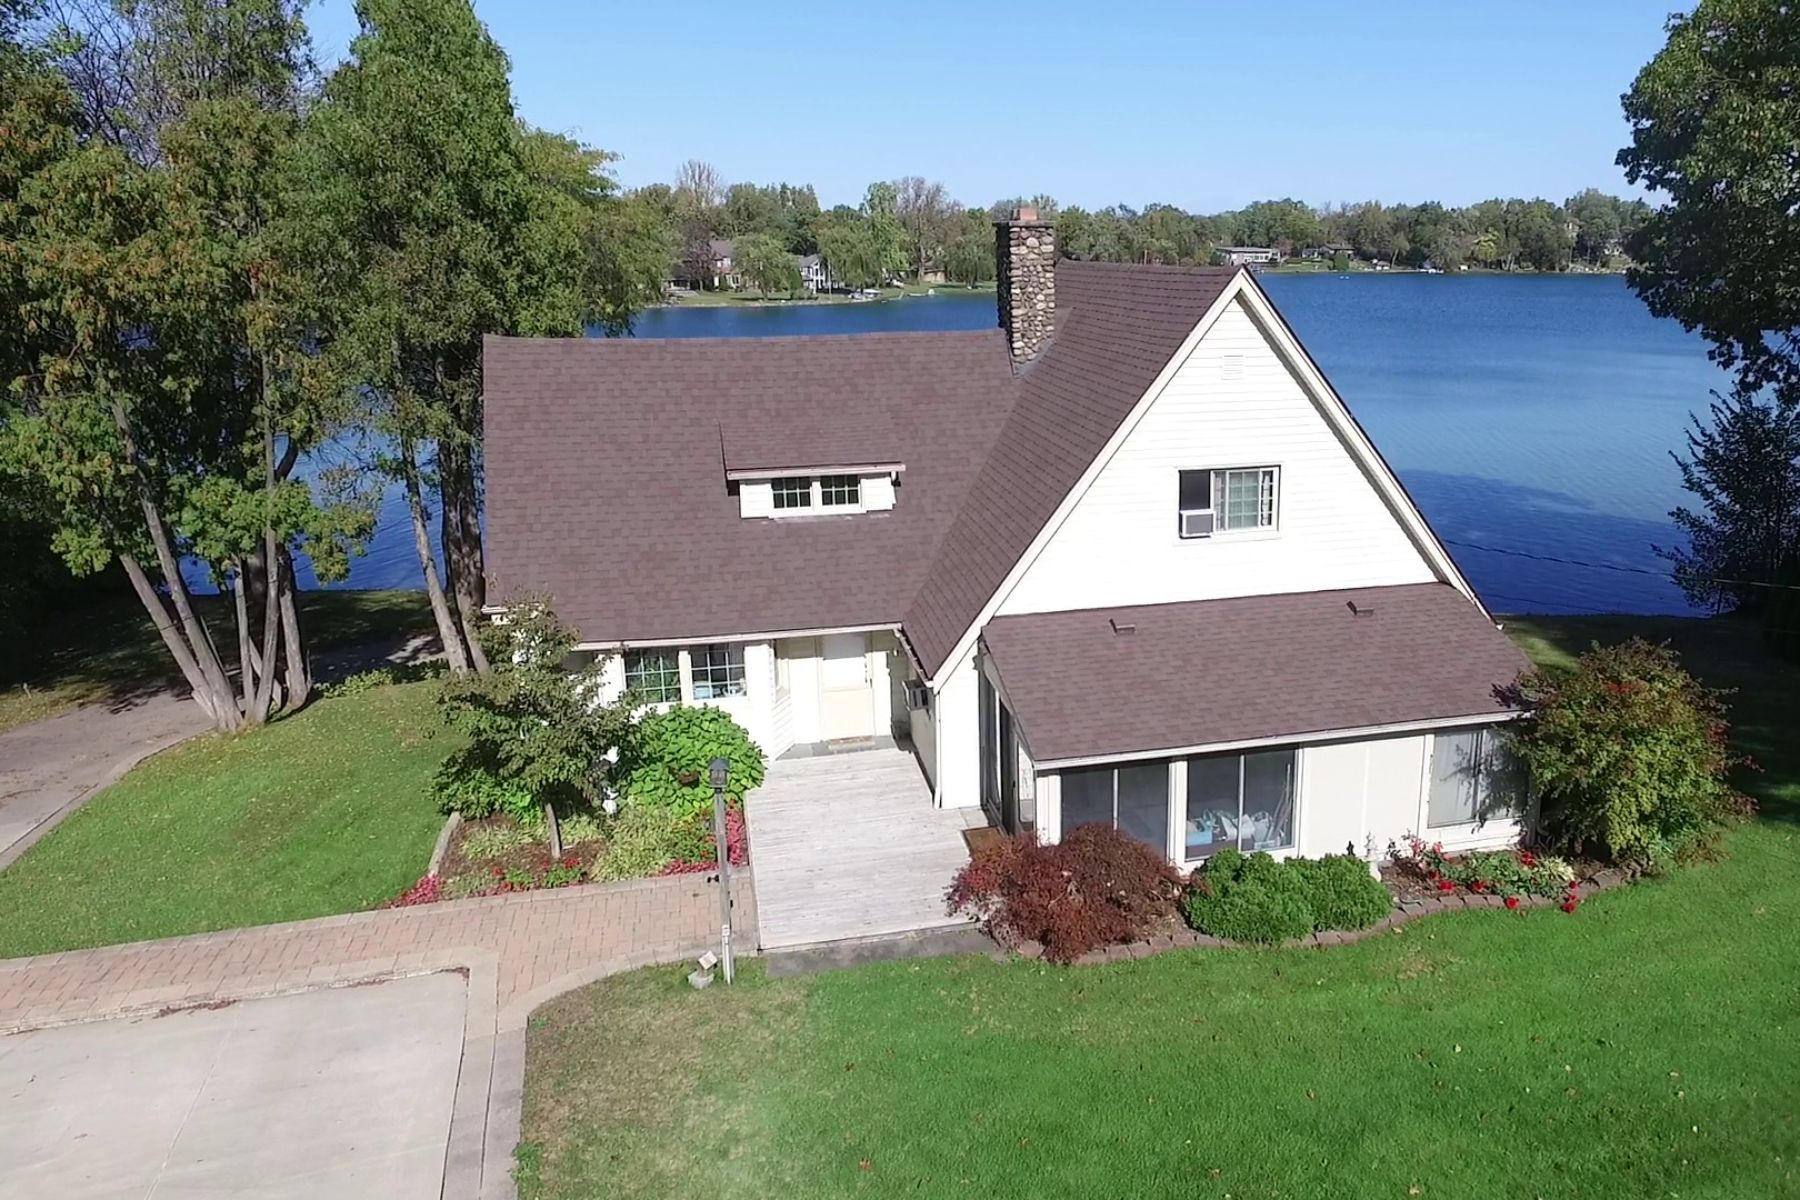 Single Family Home for Sale at West Bloomfield 6390 Commerce Rd West Bloomfield, Michigan 48324 United States